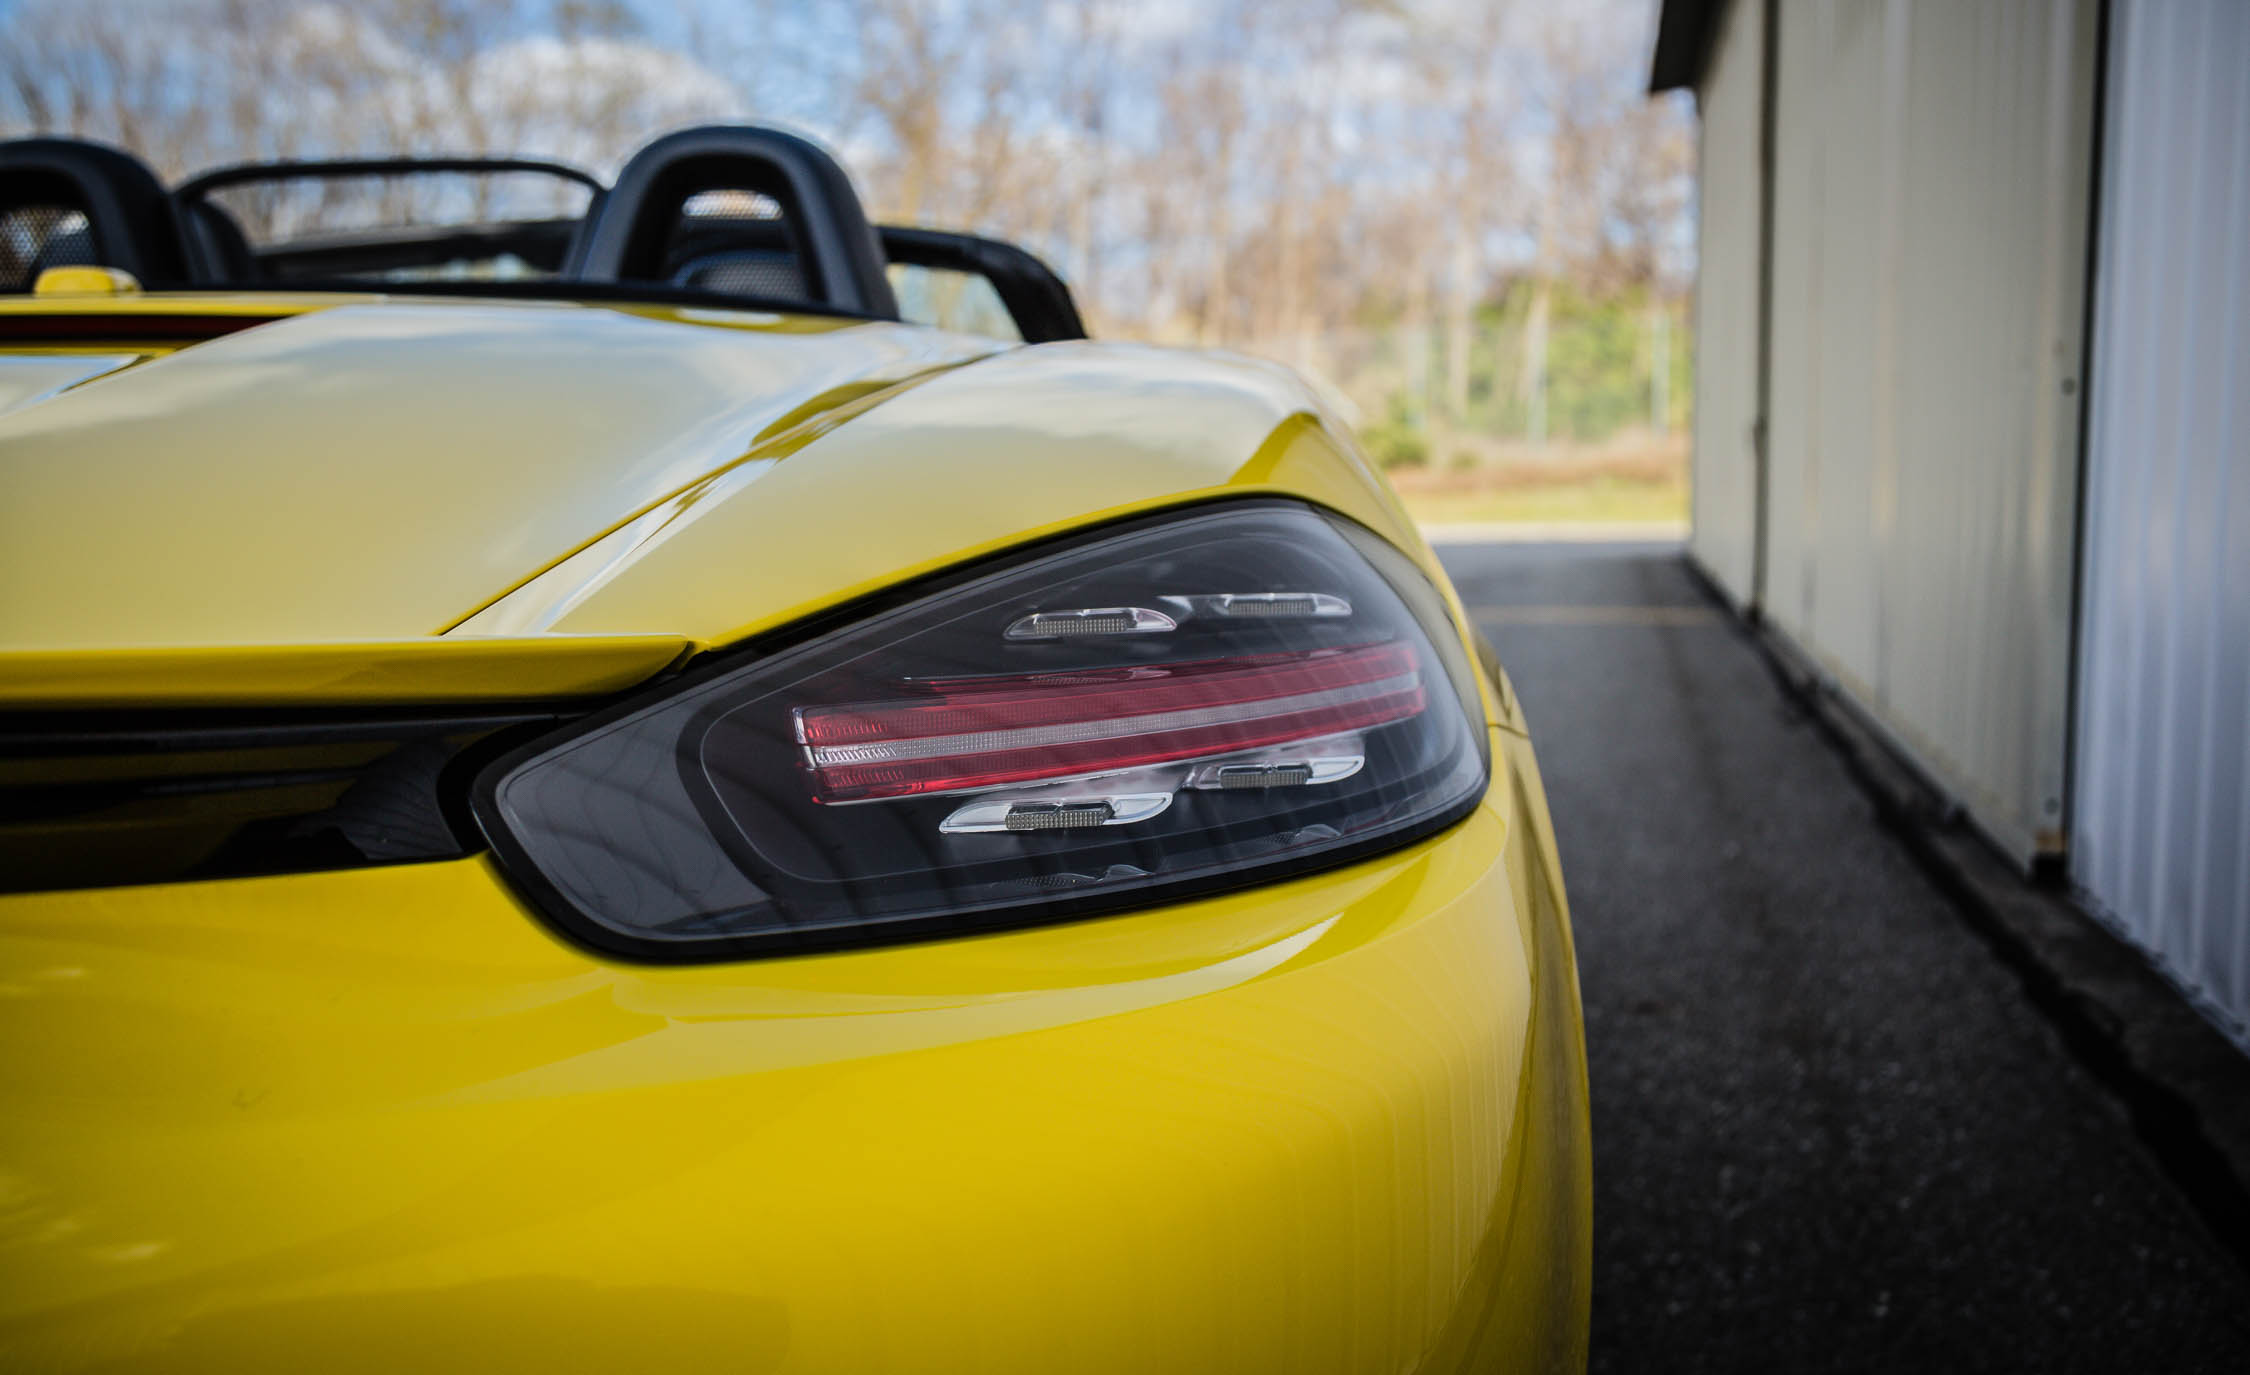 2017 Porsche 718 Boxster Exterior View Taillight (View 14 of 71)